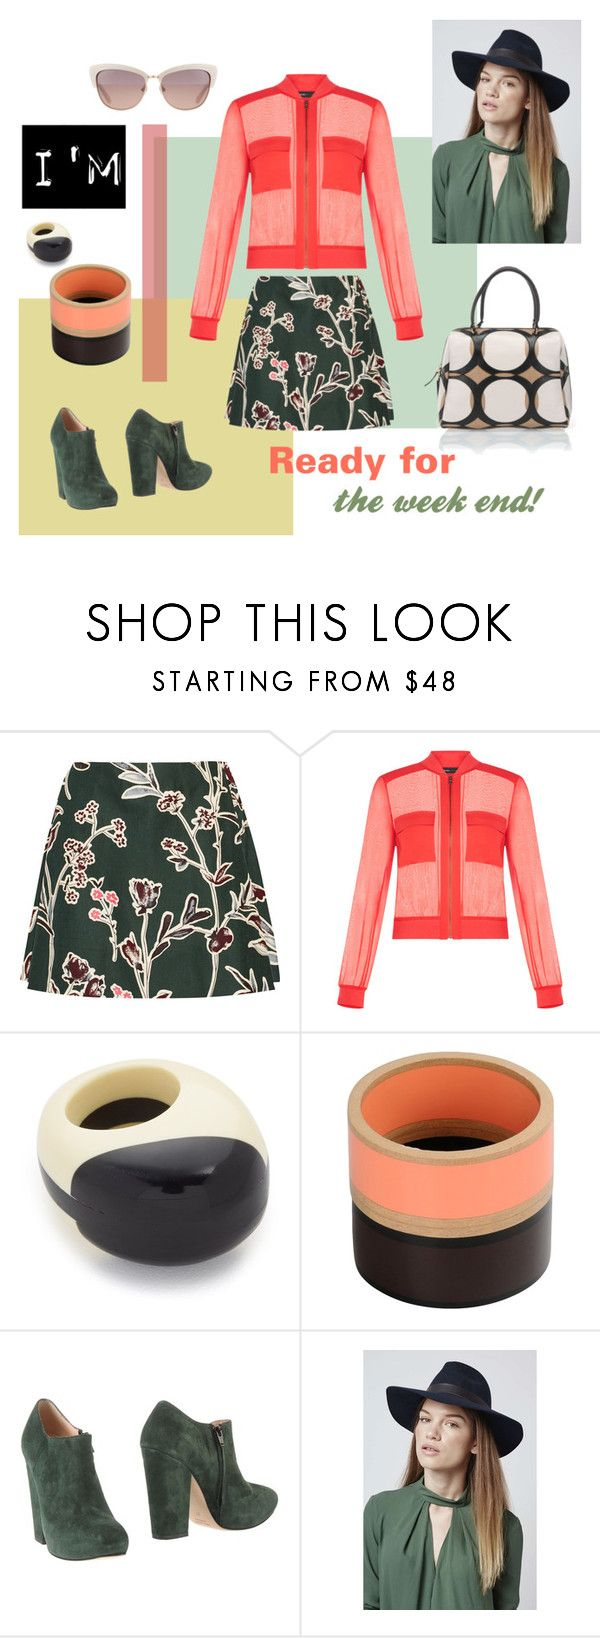 """Ready for the week end!"" by pinfi on Polyvore featuring Marni, BCBGMAXAZRIA, Noa, Topshop, Kate Spade and vintage #fashion #trends"